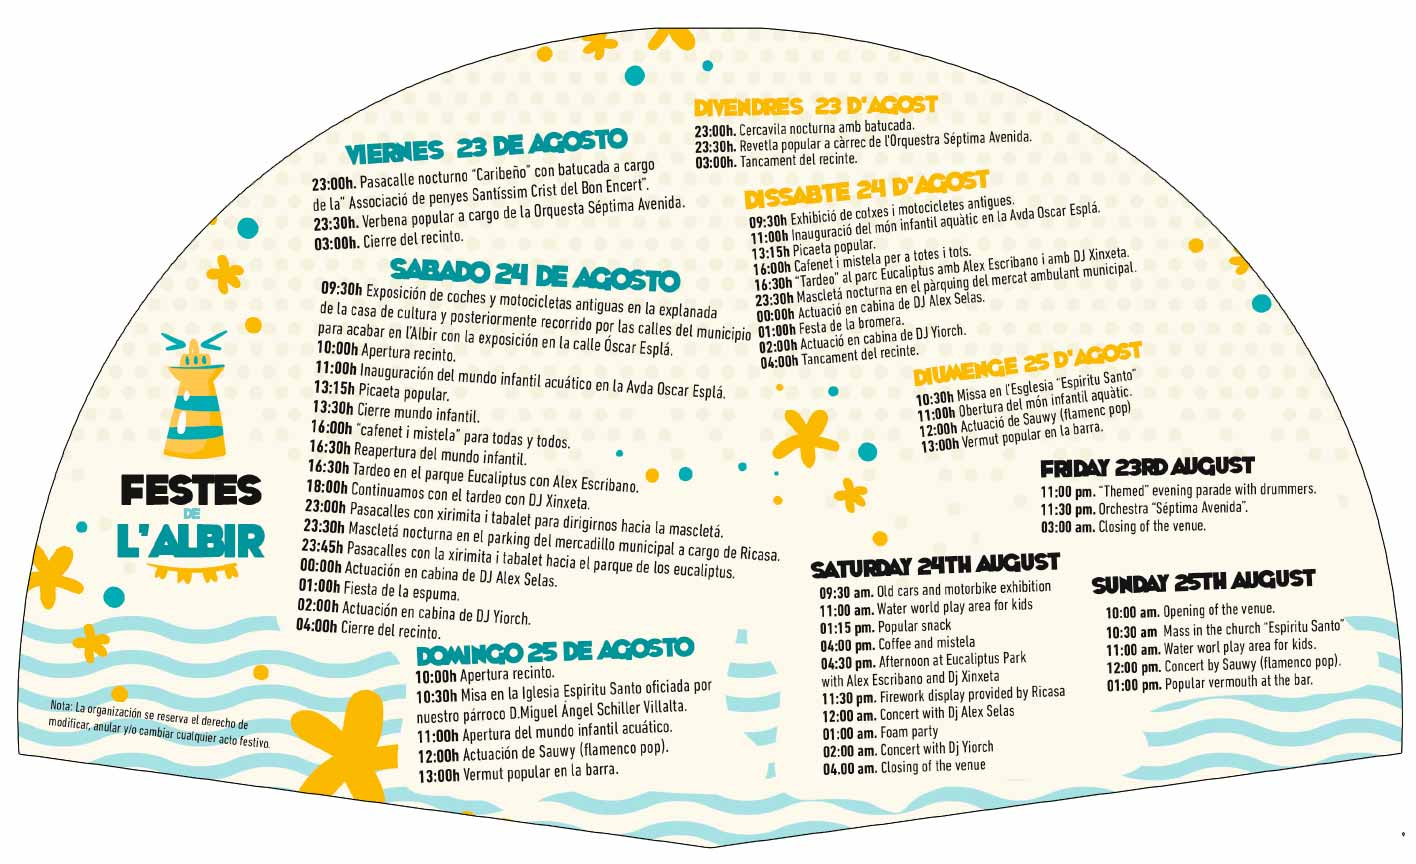 Albir fiestas program